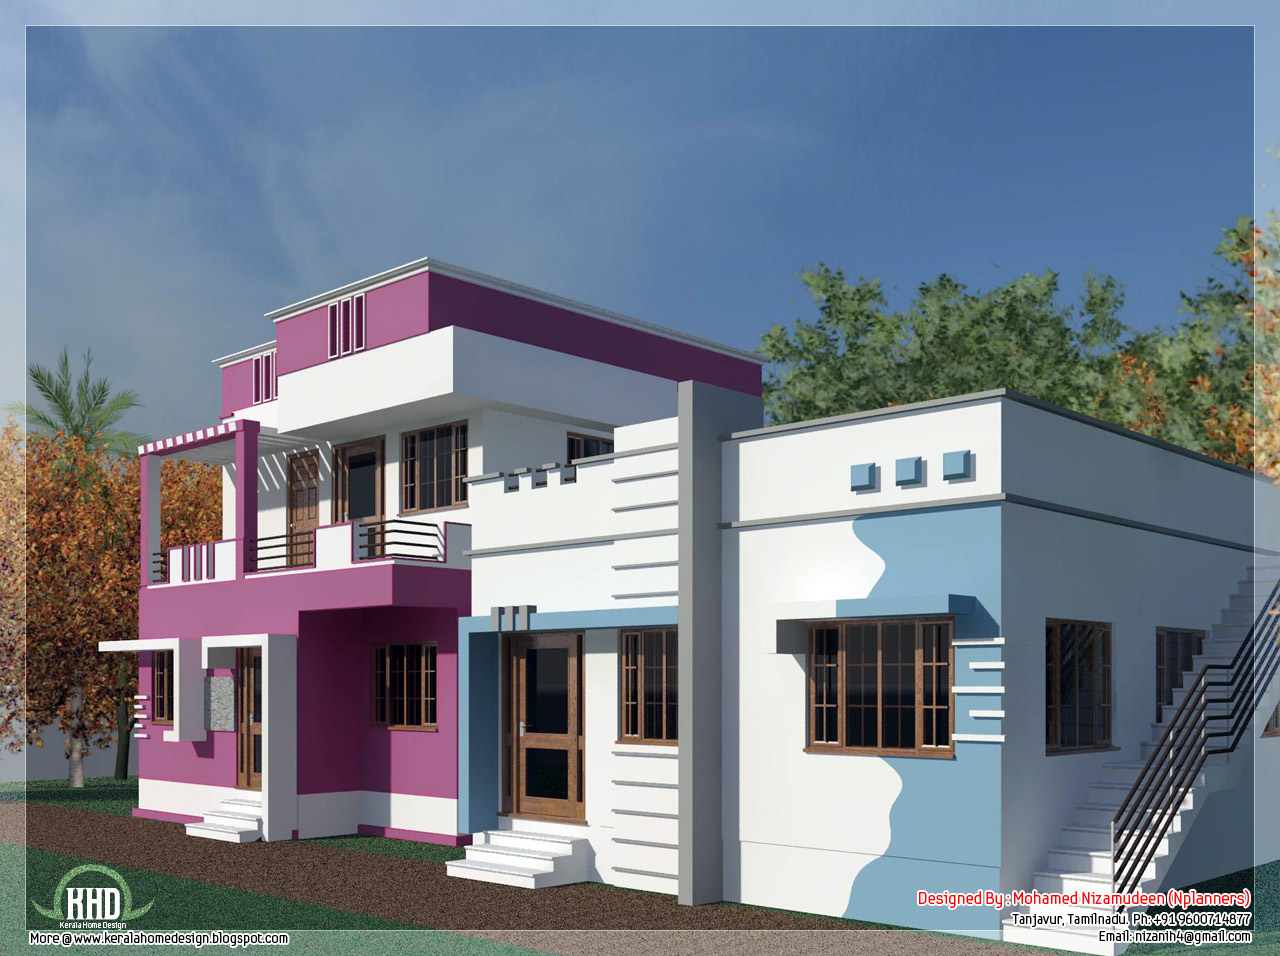 Tamilnadu Model Home Desgin In 3000 Kerala Home